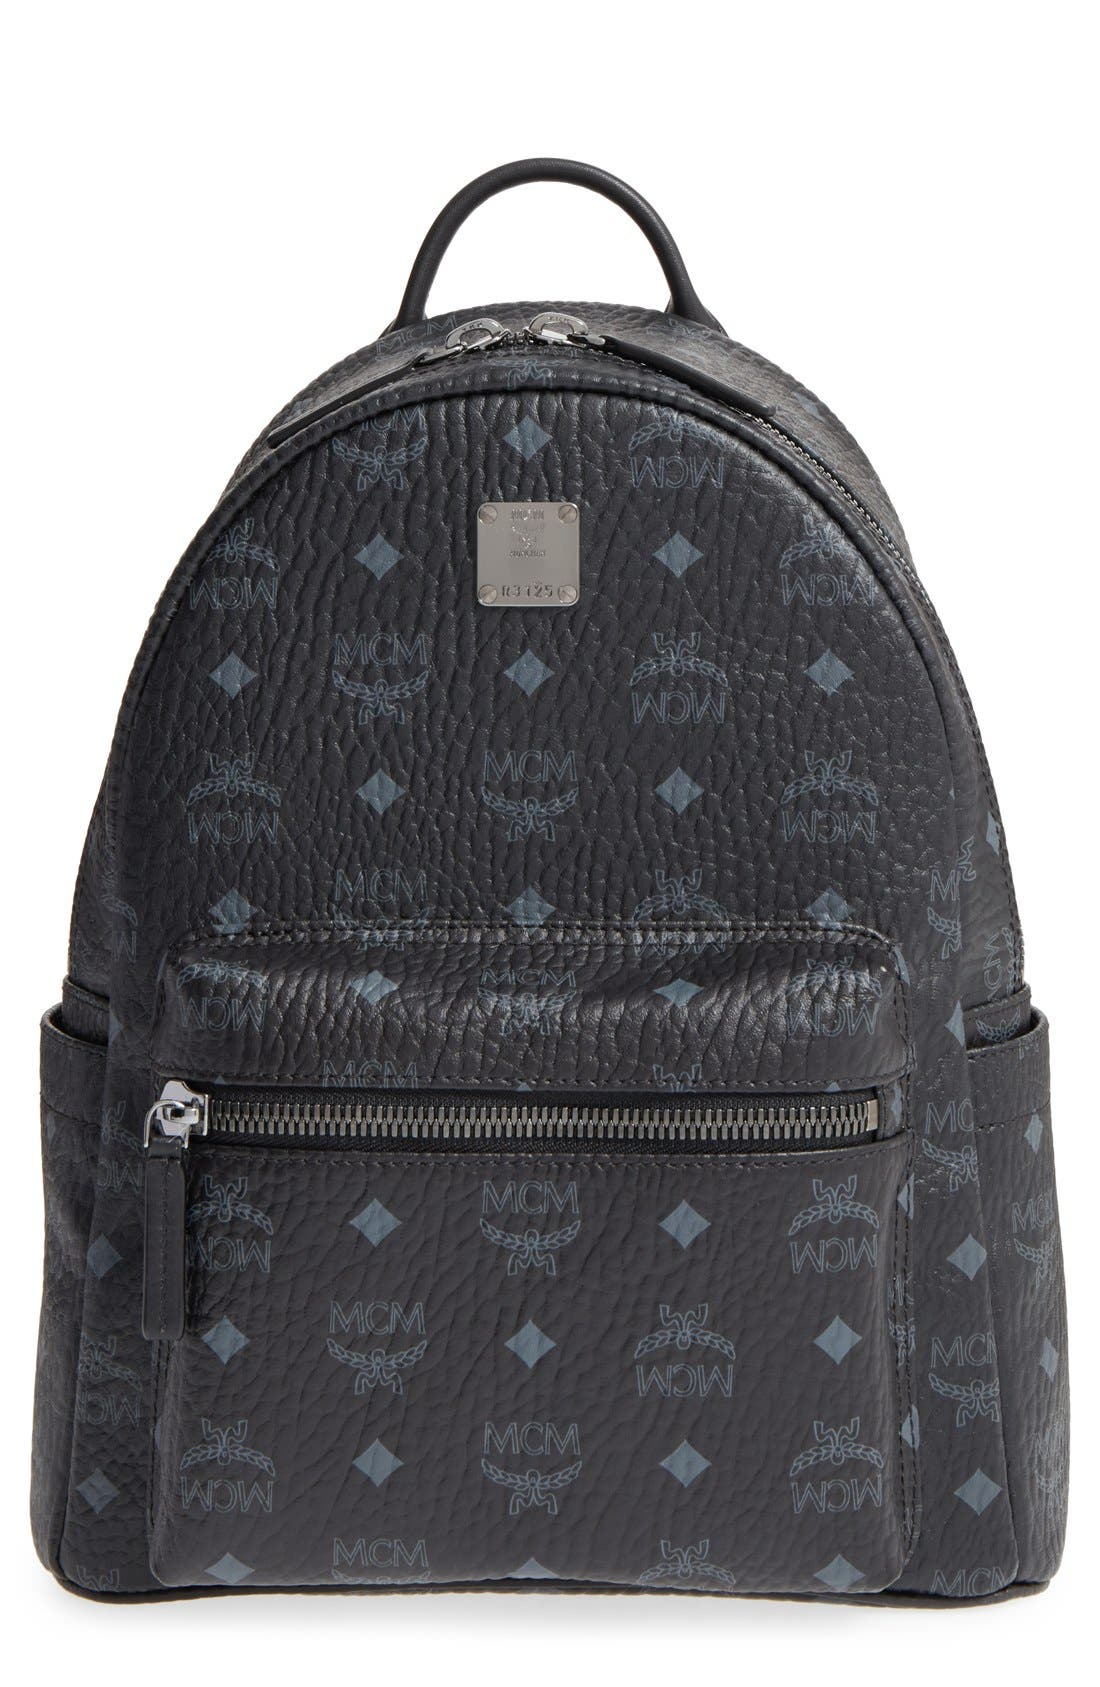 MCM Small Stark - Visetos Backpack